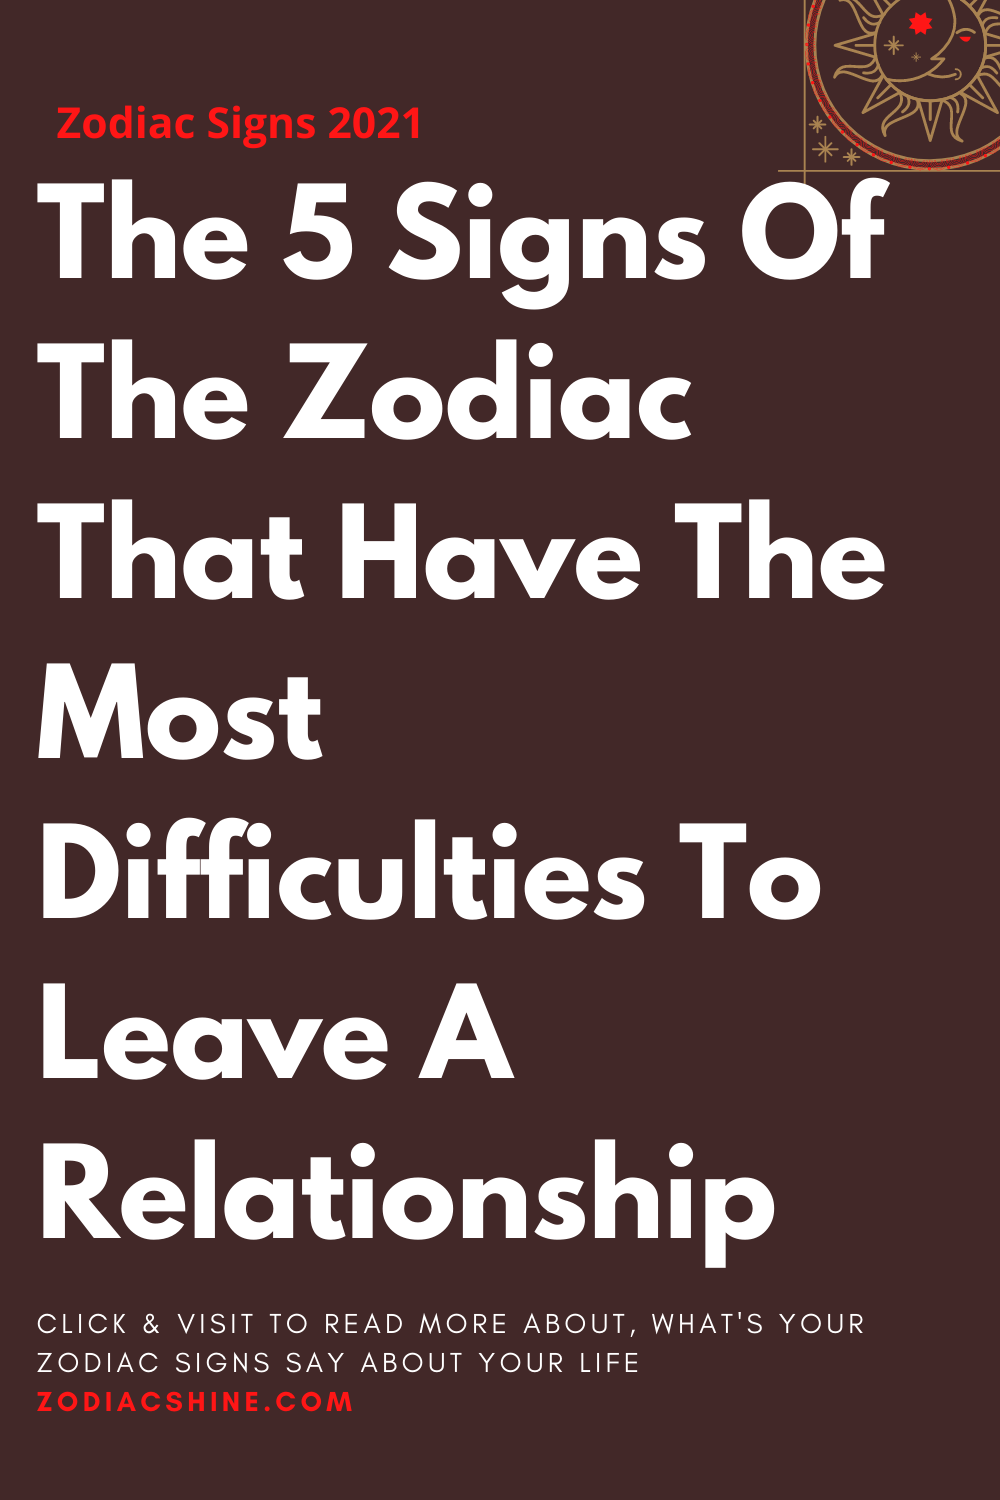 The 5 Signs Of The Zodiac That Have The Most Difficulties To Leave A Relationship